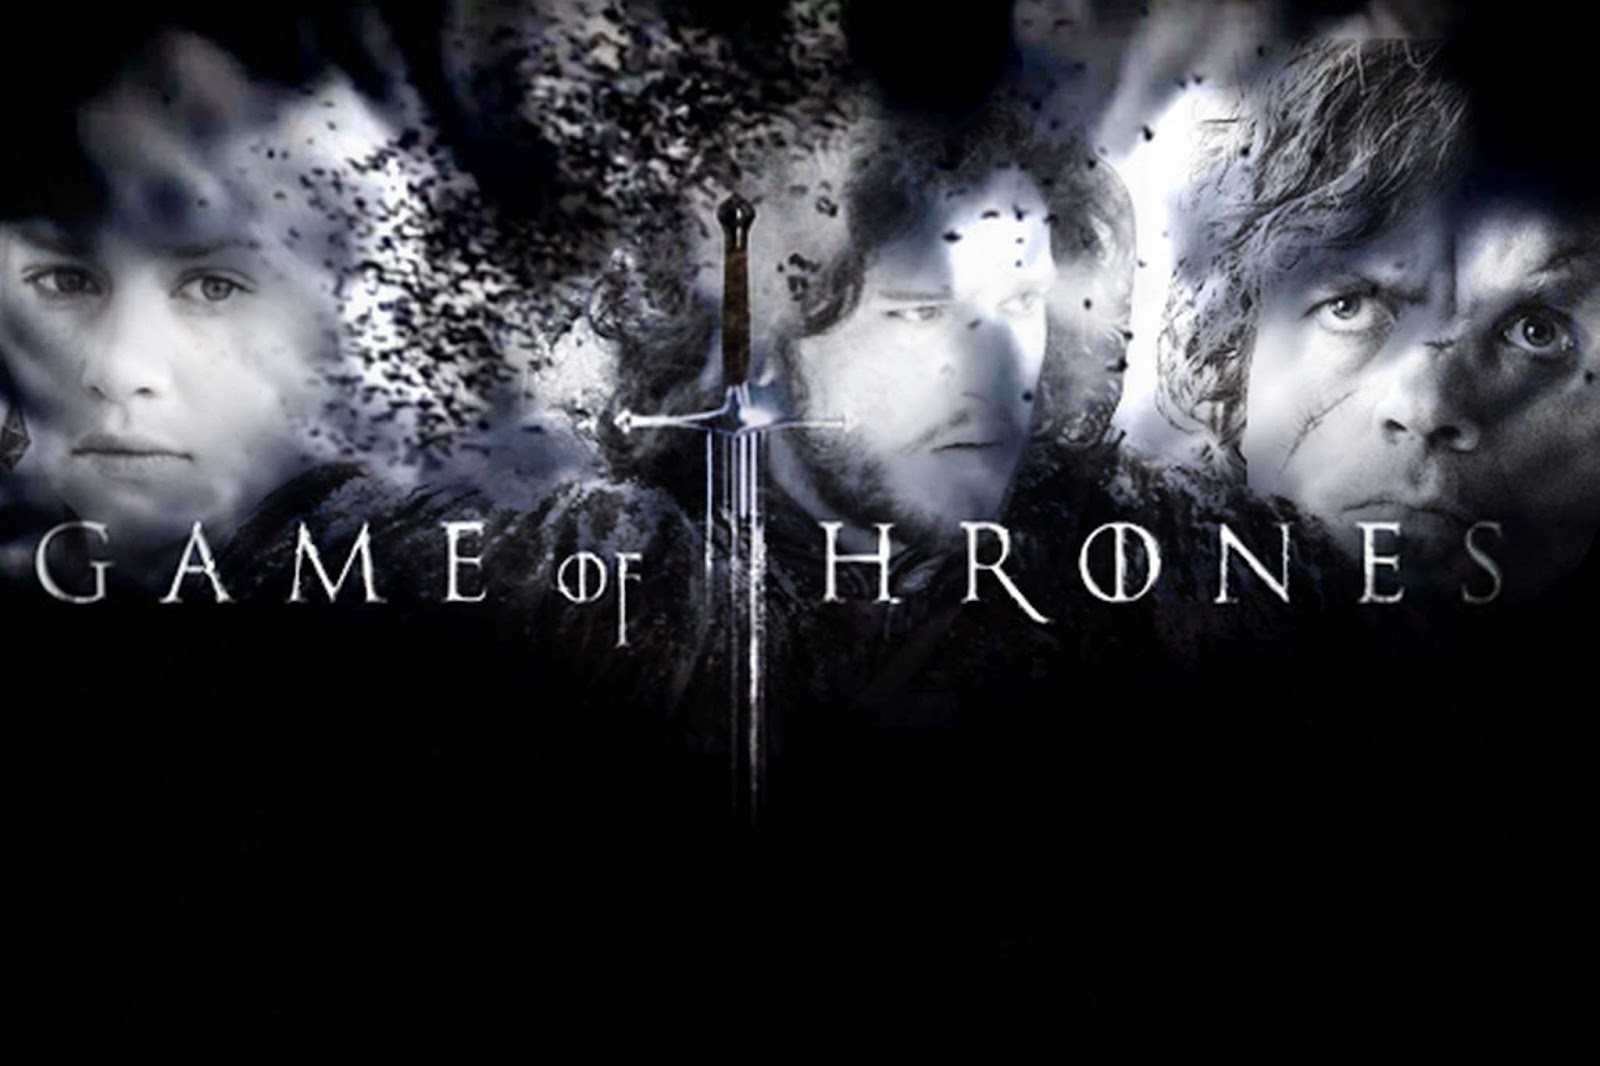 """The return of """"Game of Thrones"""" prompts massive piracy"""